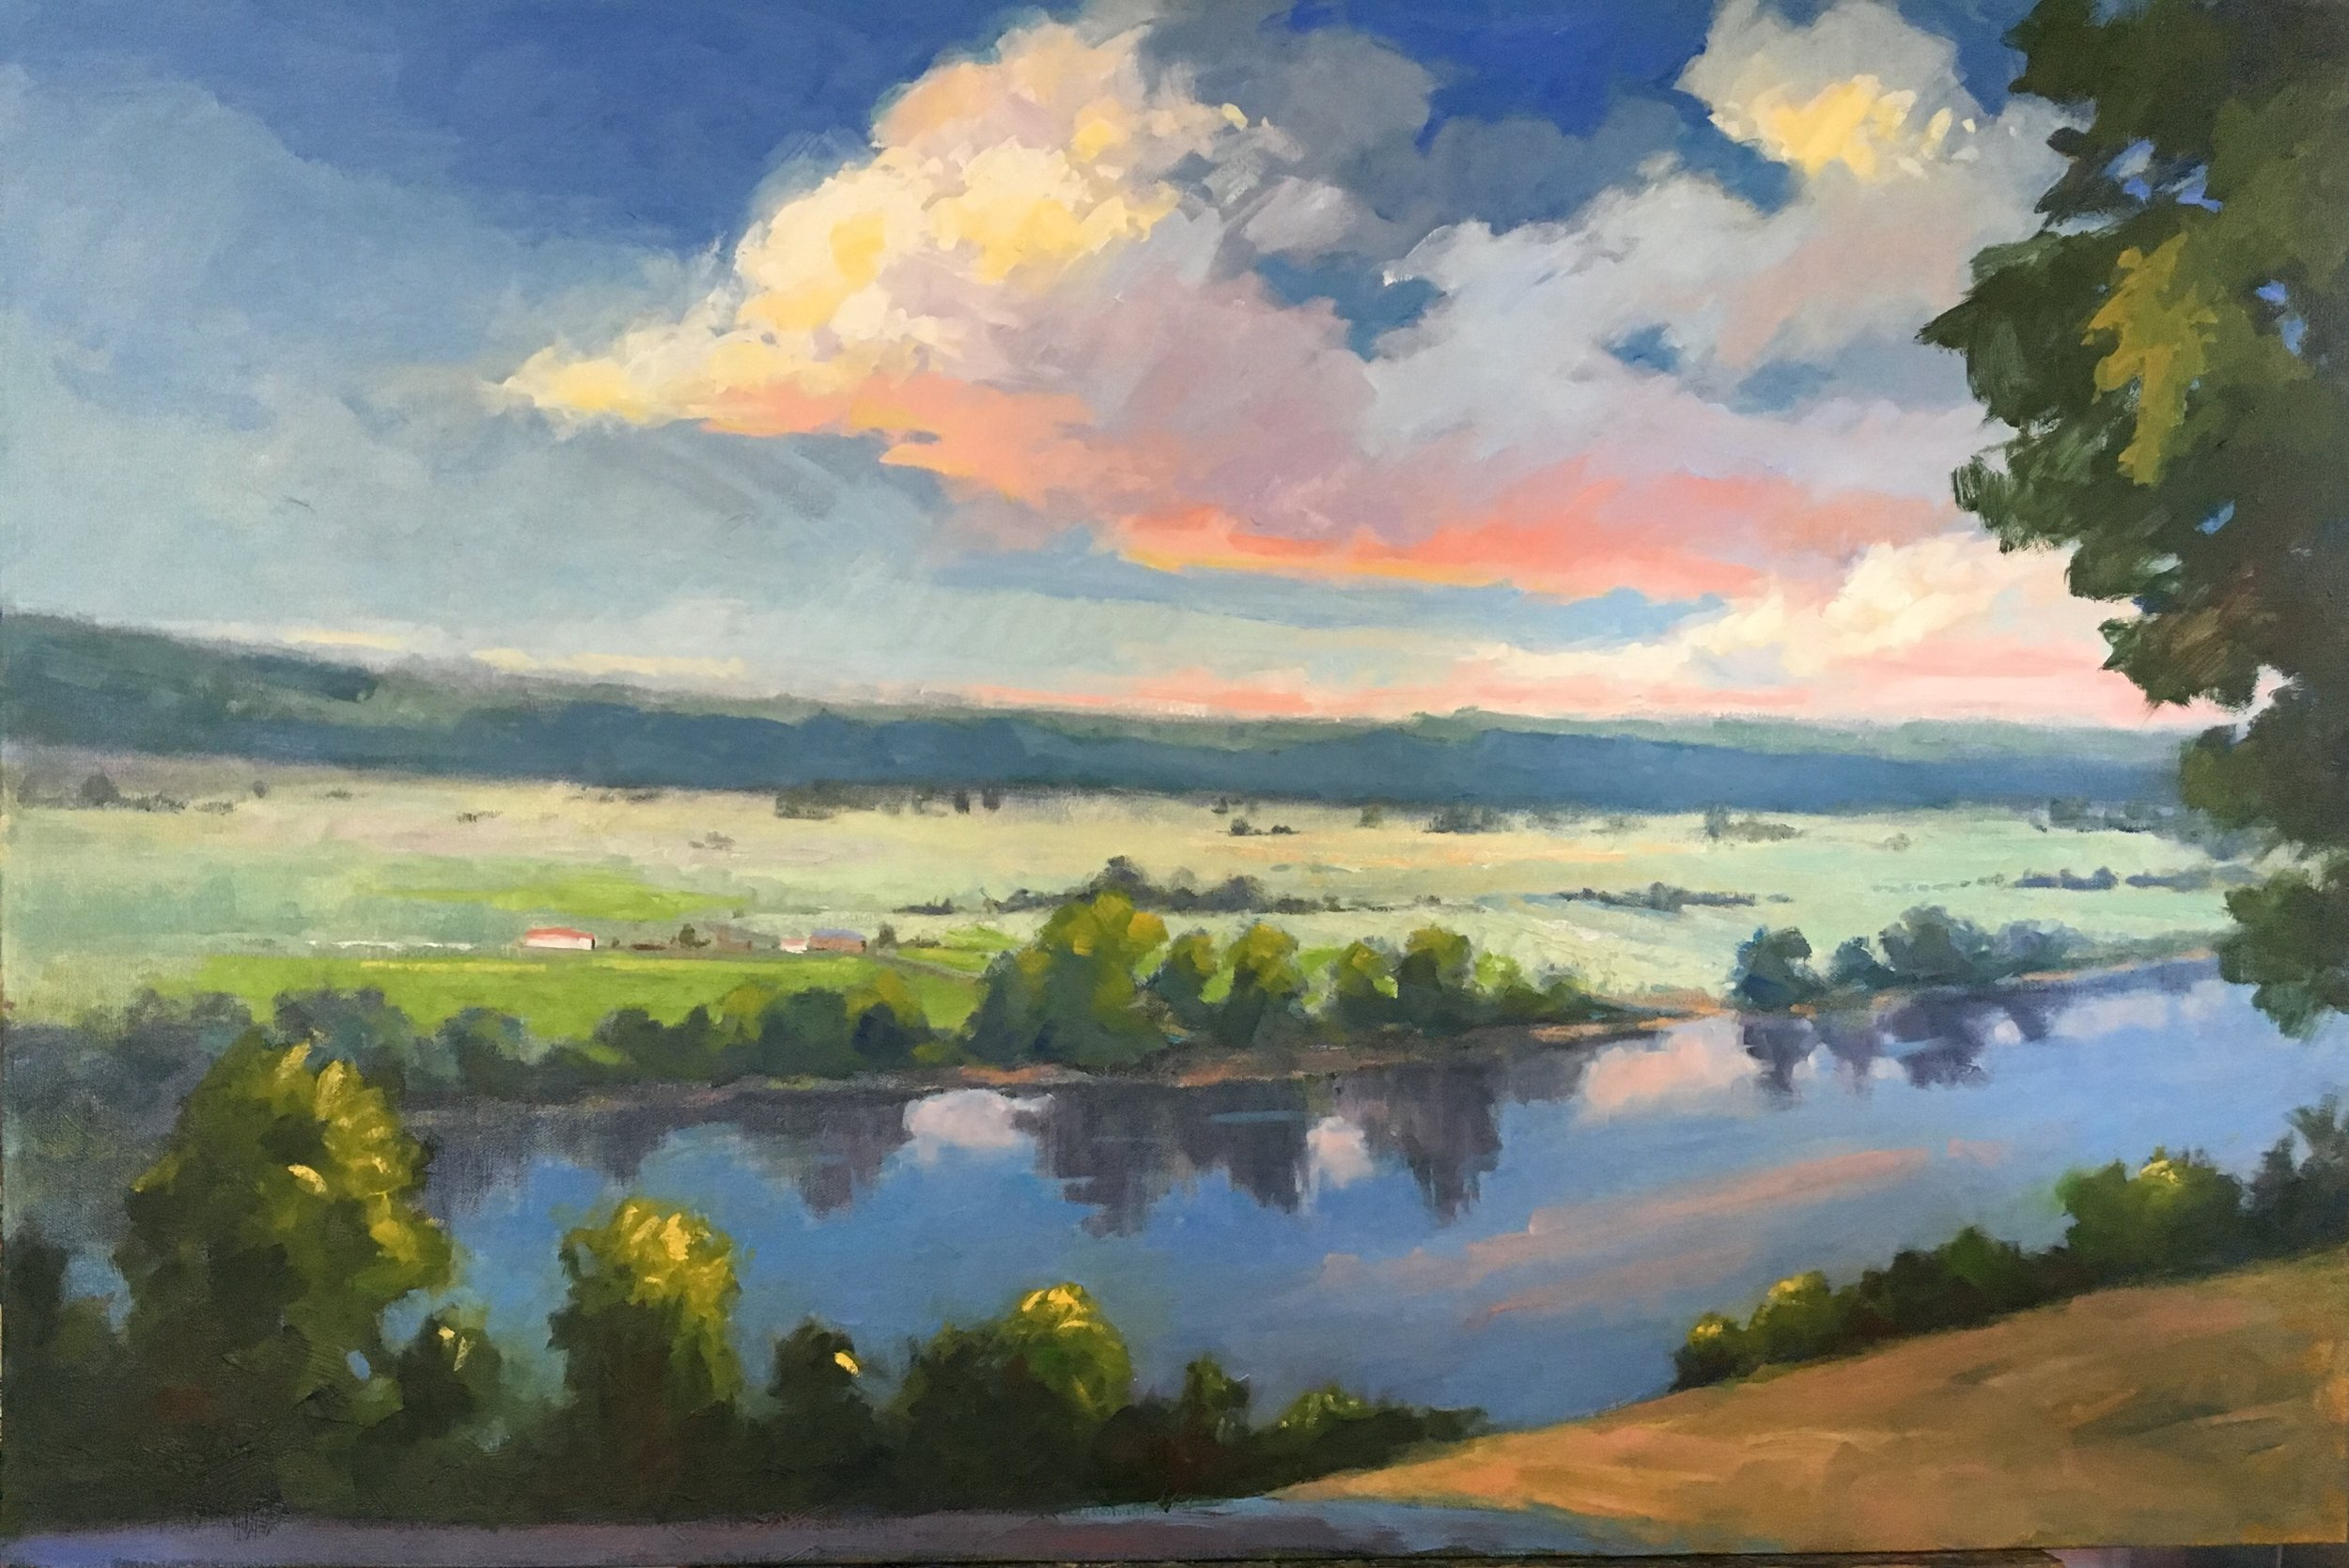 """Peaceful Morning"" by Catherine Bryant, Oil on canvas, 24x36in, 2018, $2150"